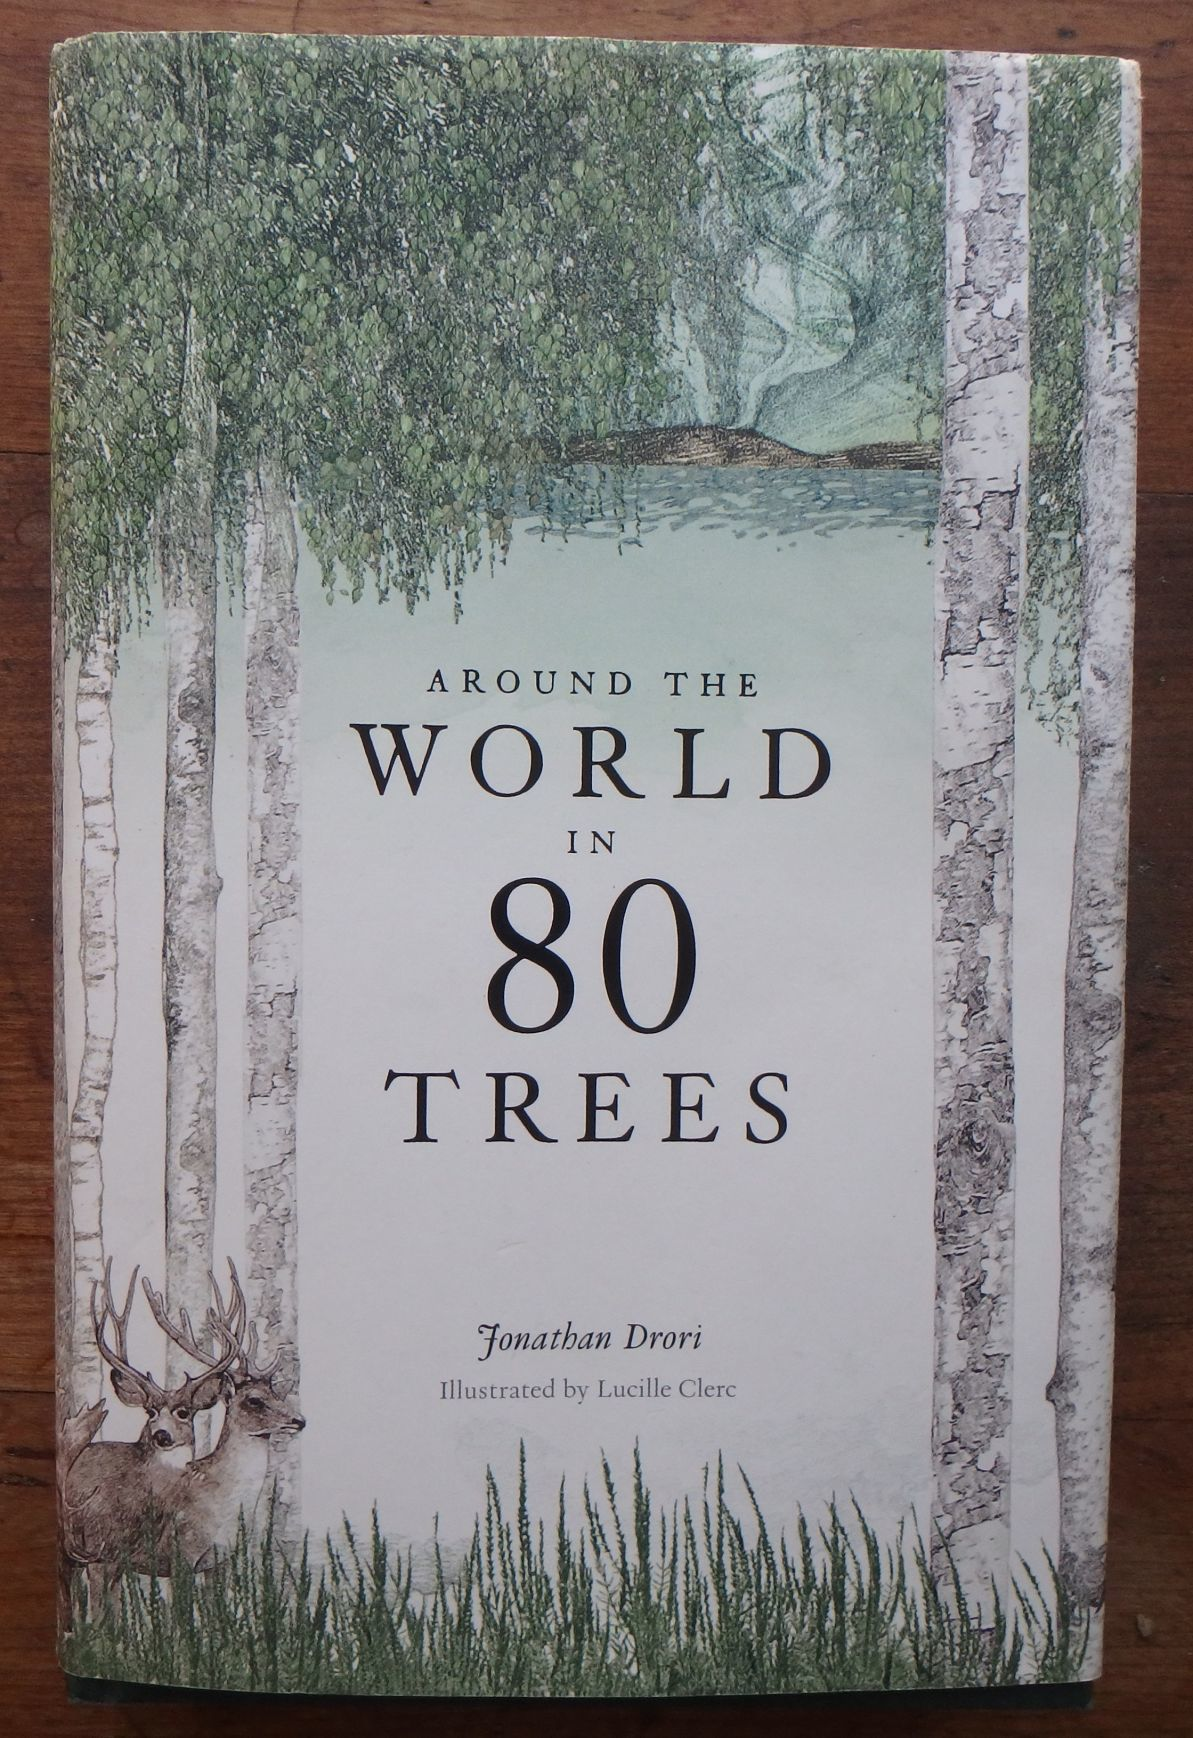 Around the World in 80 Trees (2).JPG